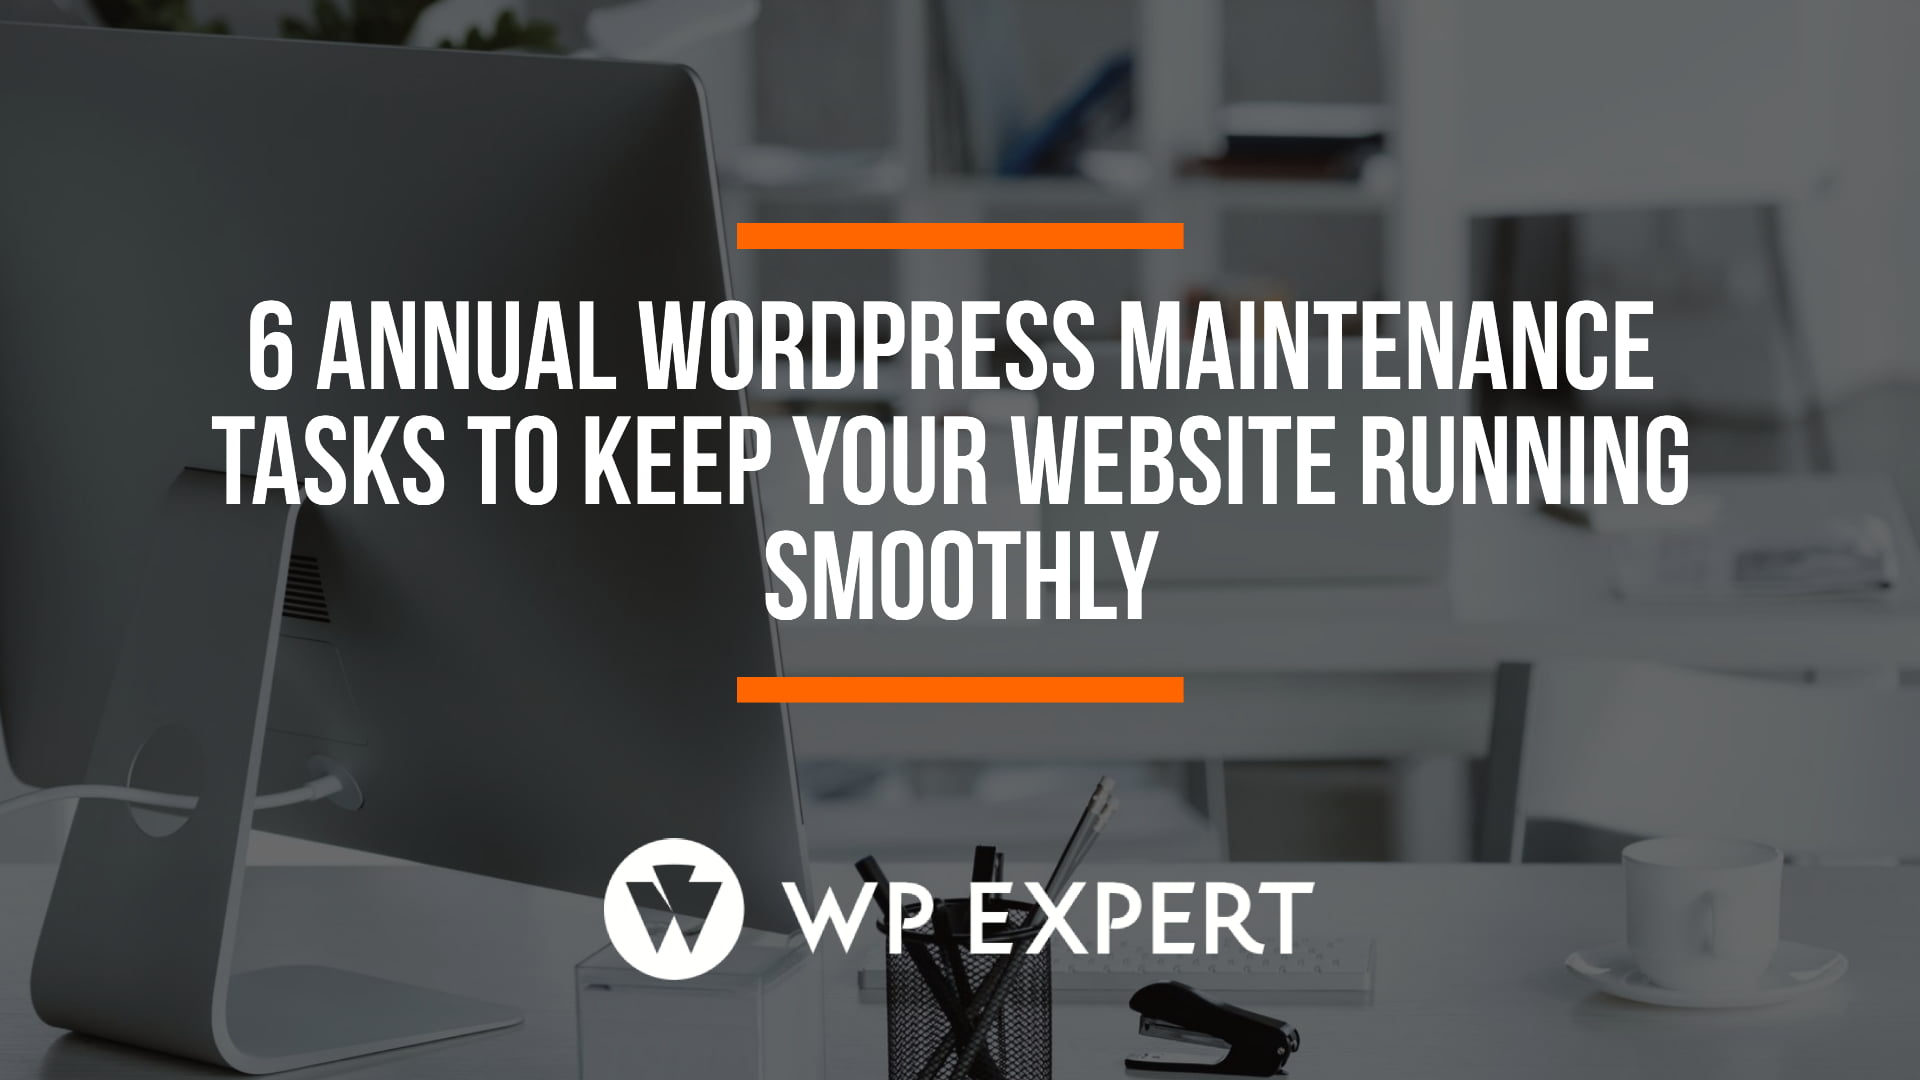 6 Annual WordPress Maintenance Tasks To Keep Your Website Running Smoothly